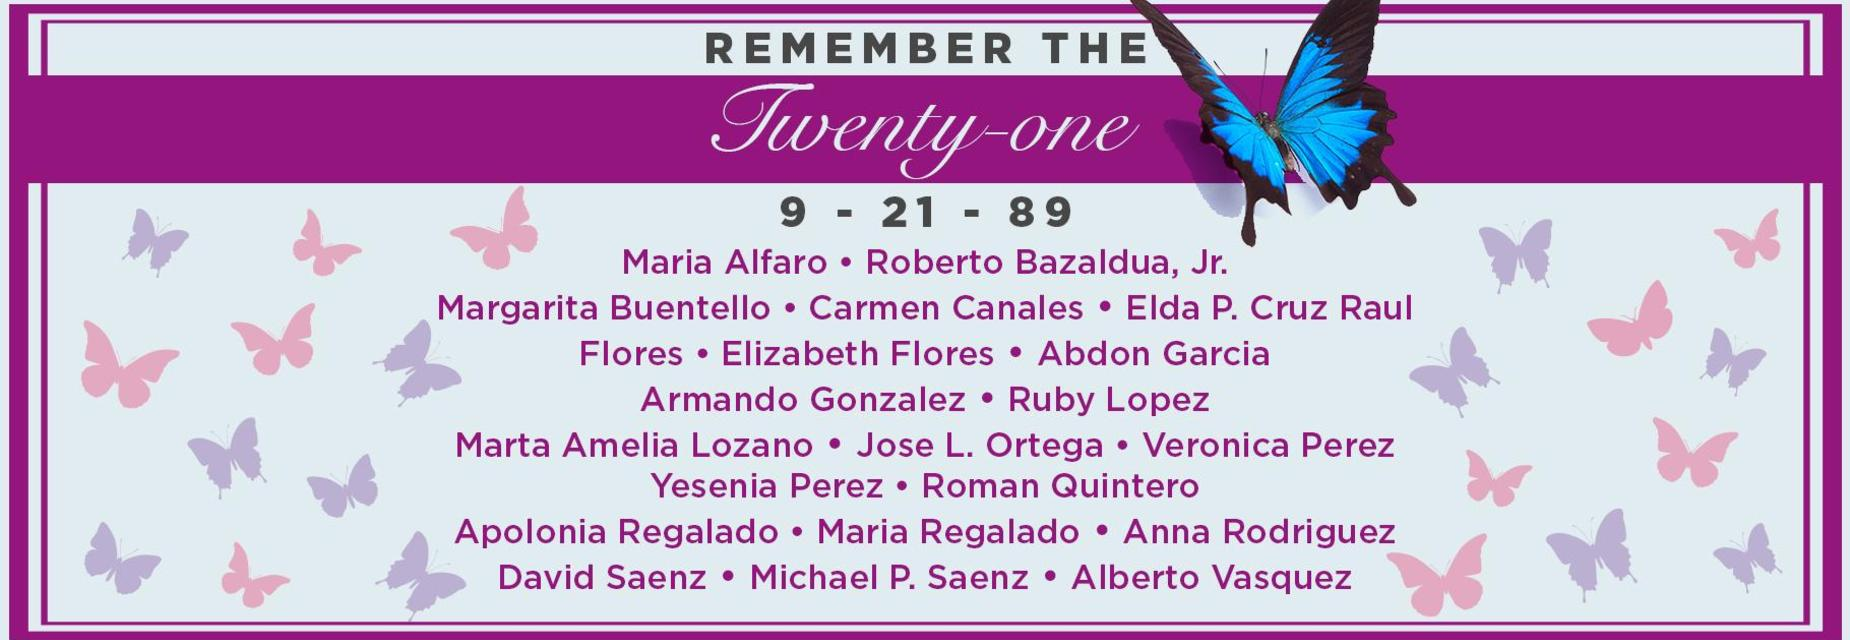 Remember the 21